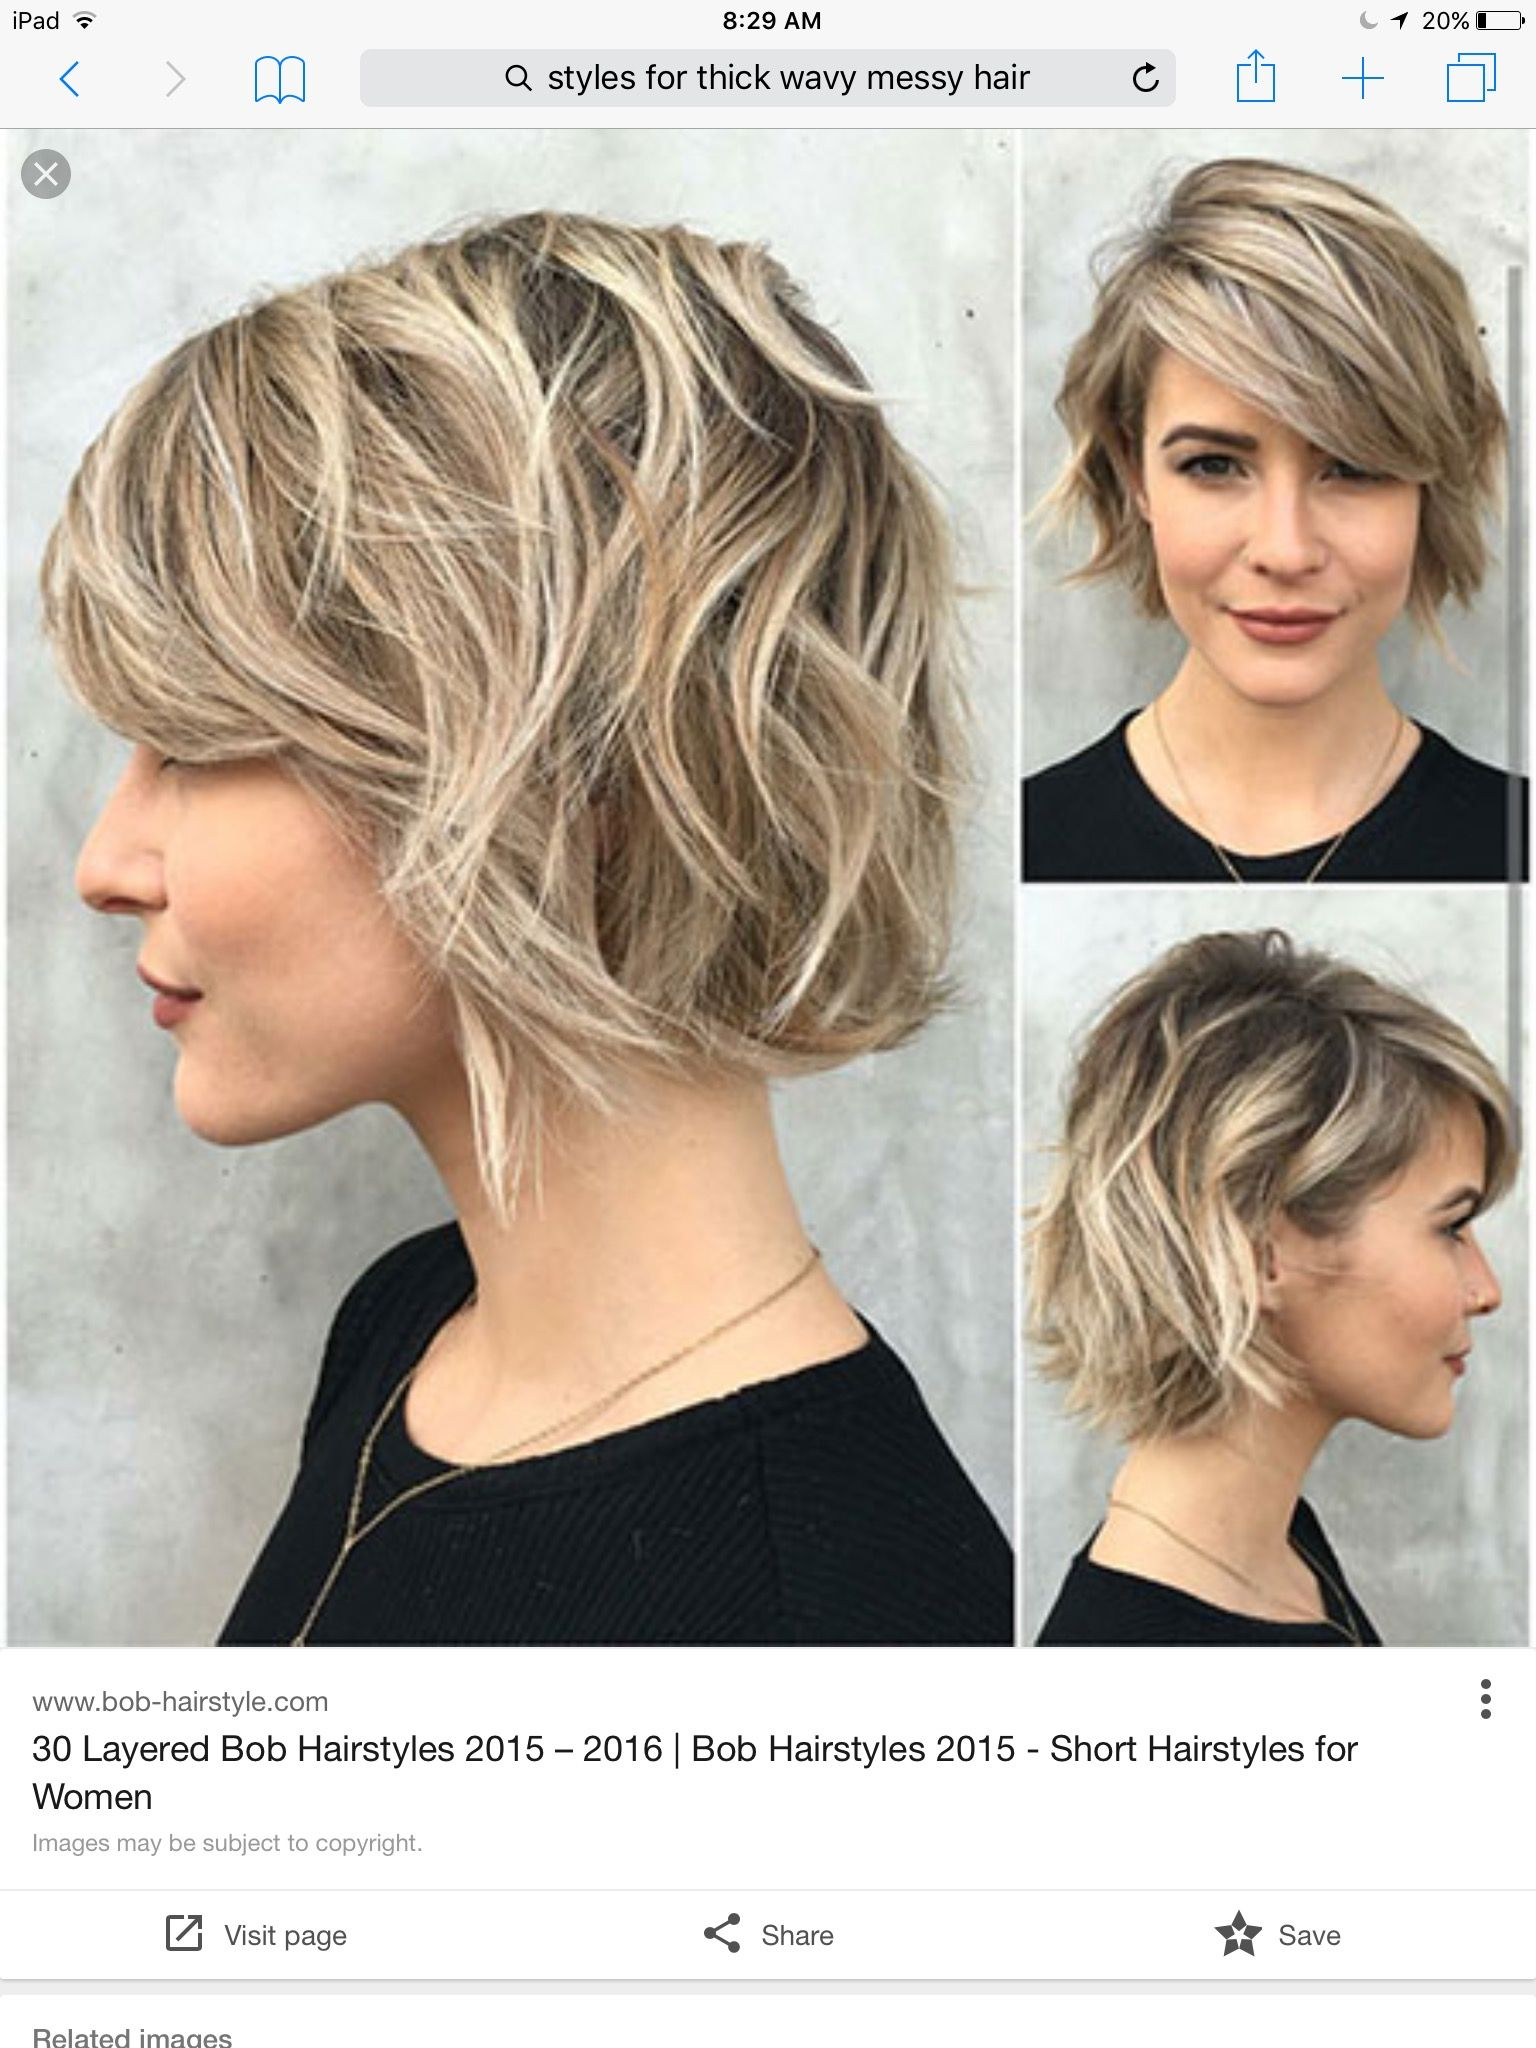 Pin by Lisa Jones on Hairstyles